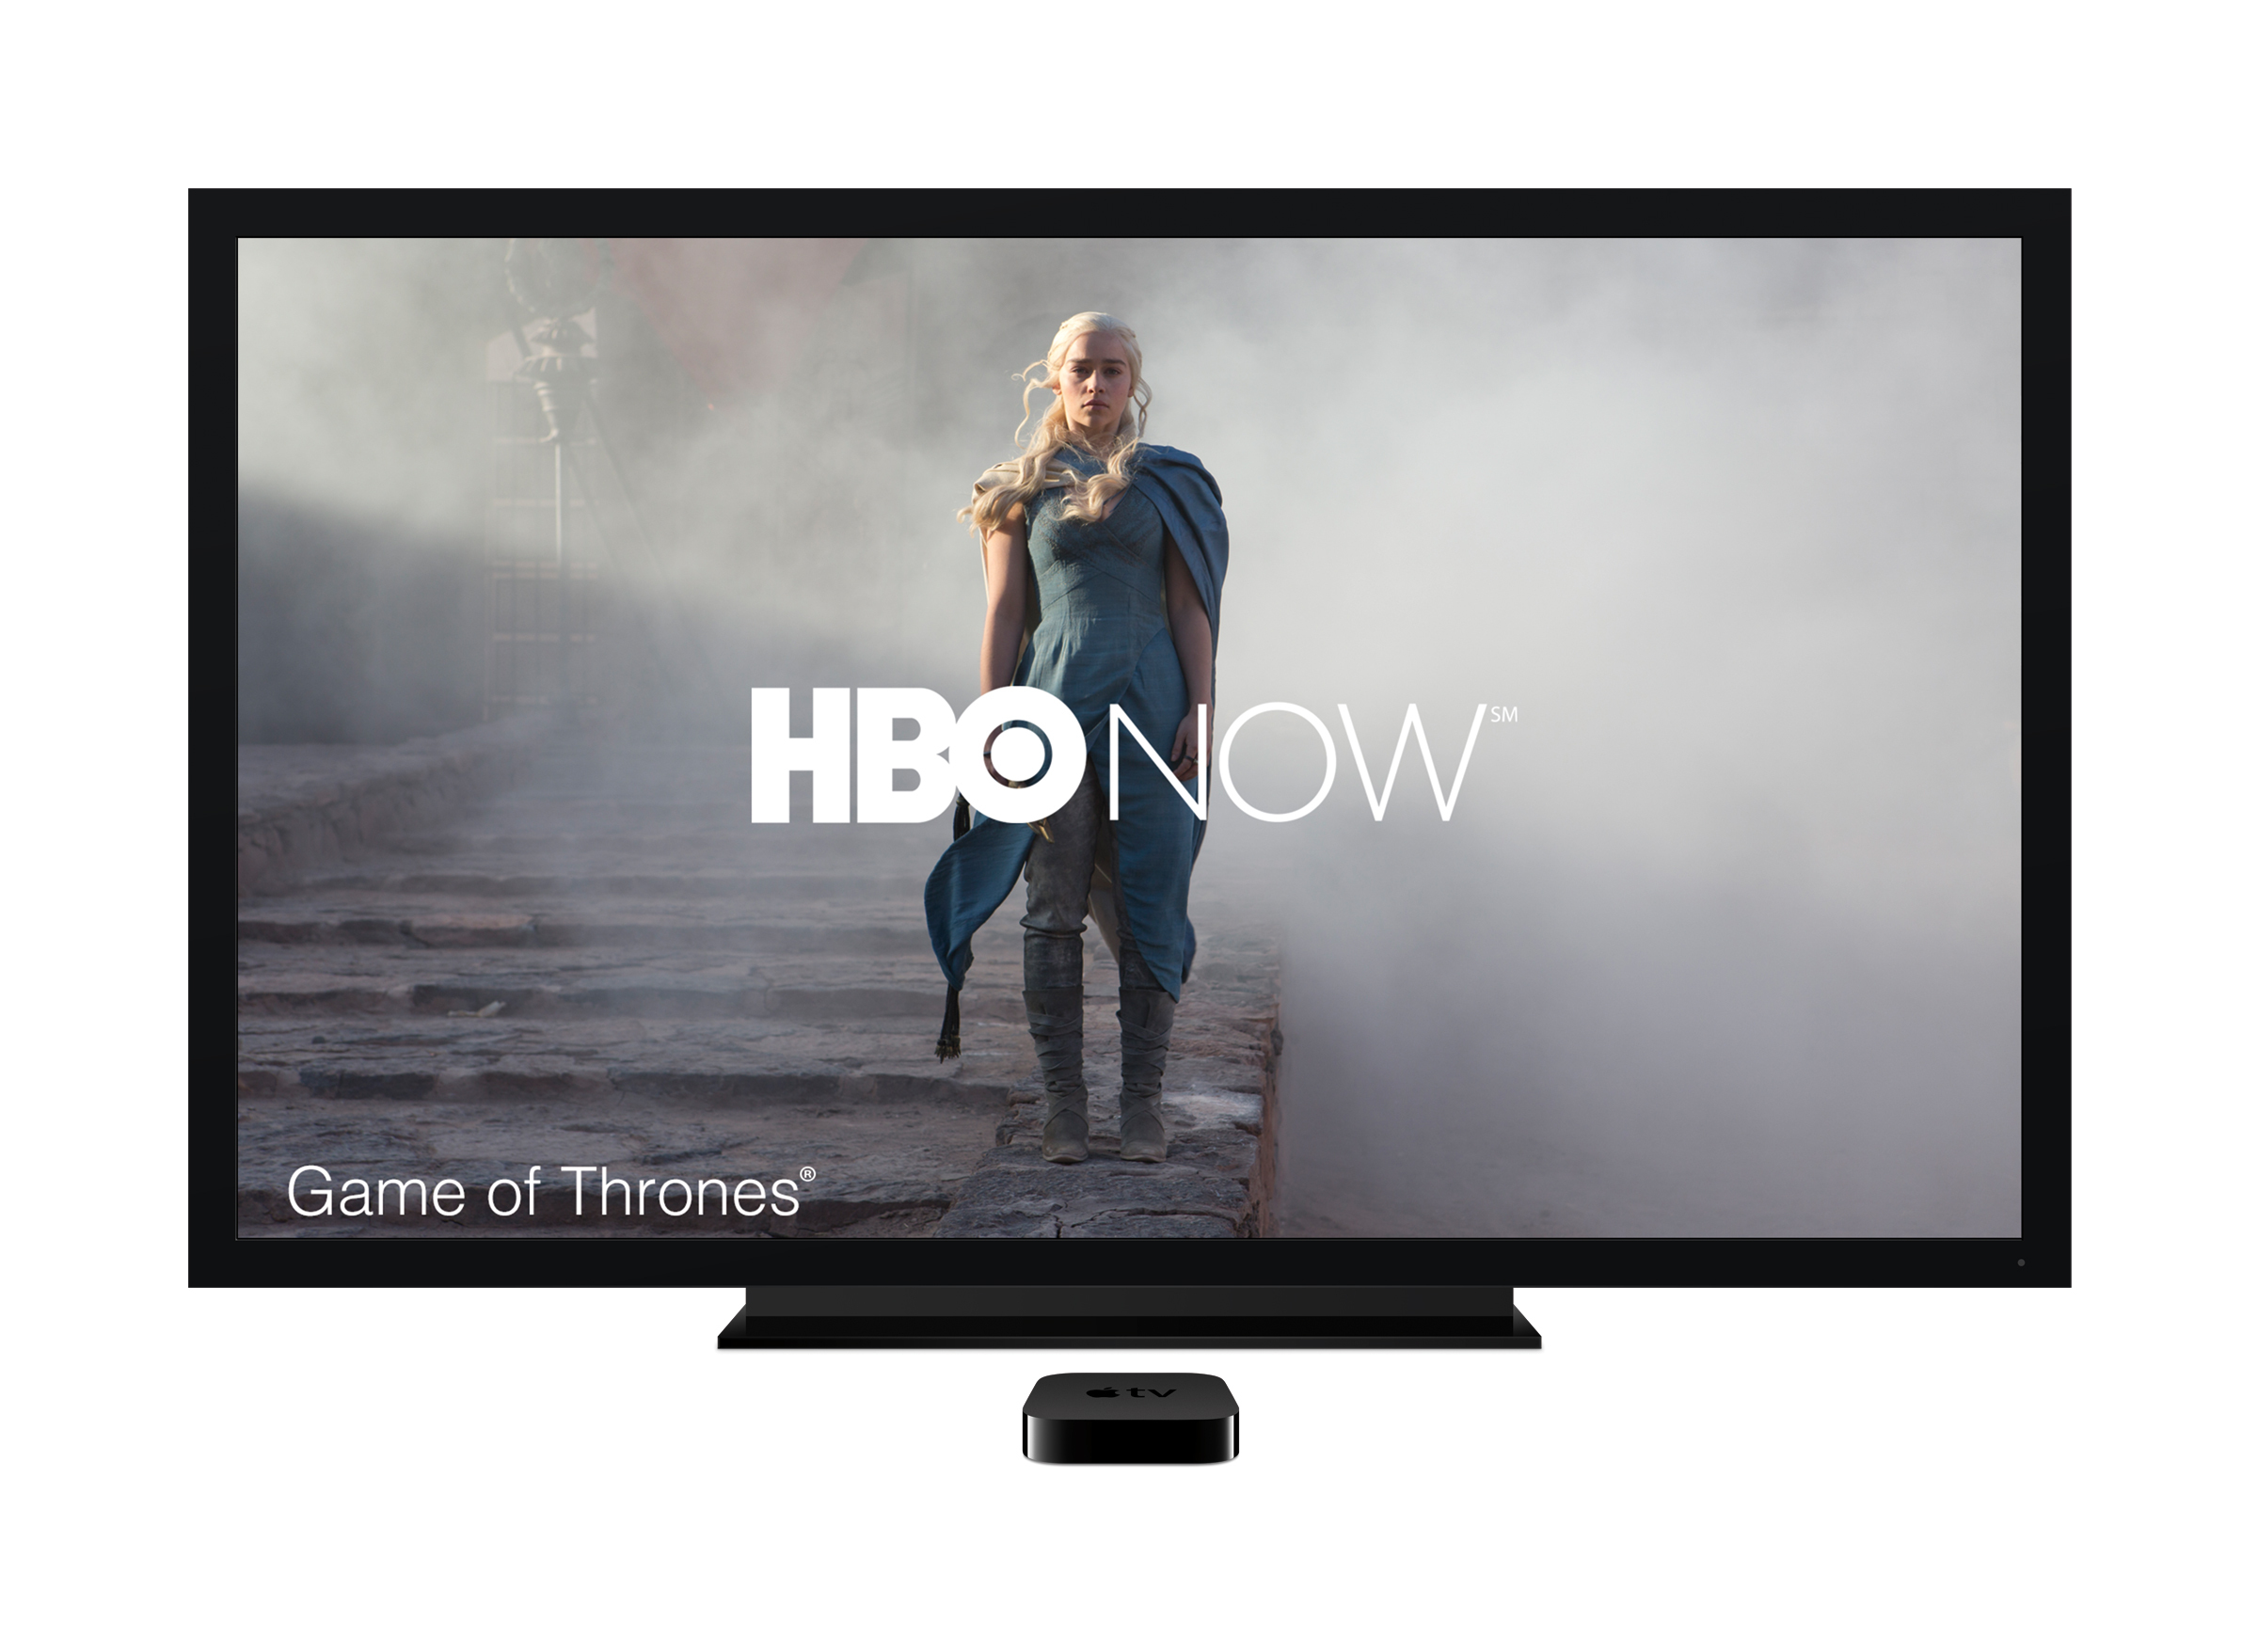 HBO NOW Premiering in April | Business Wire